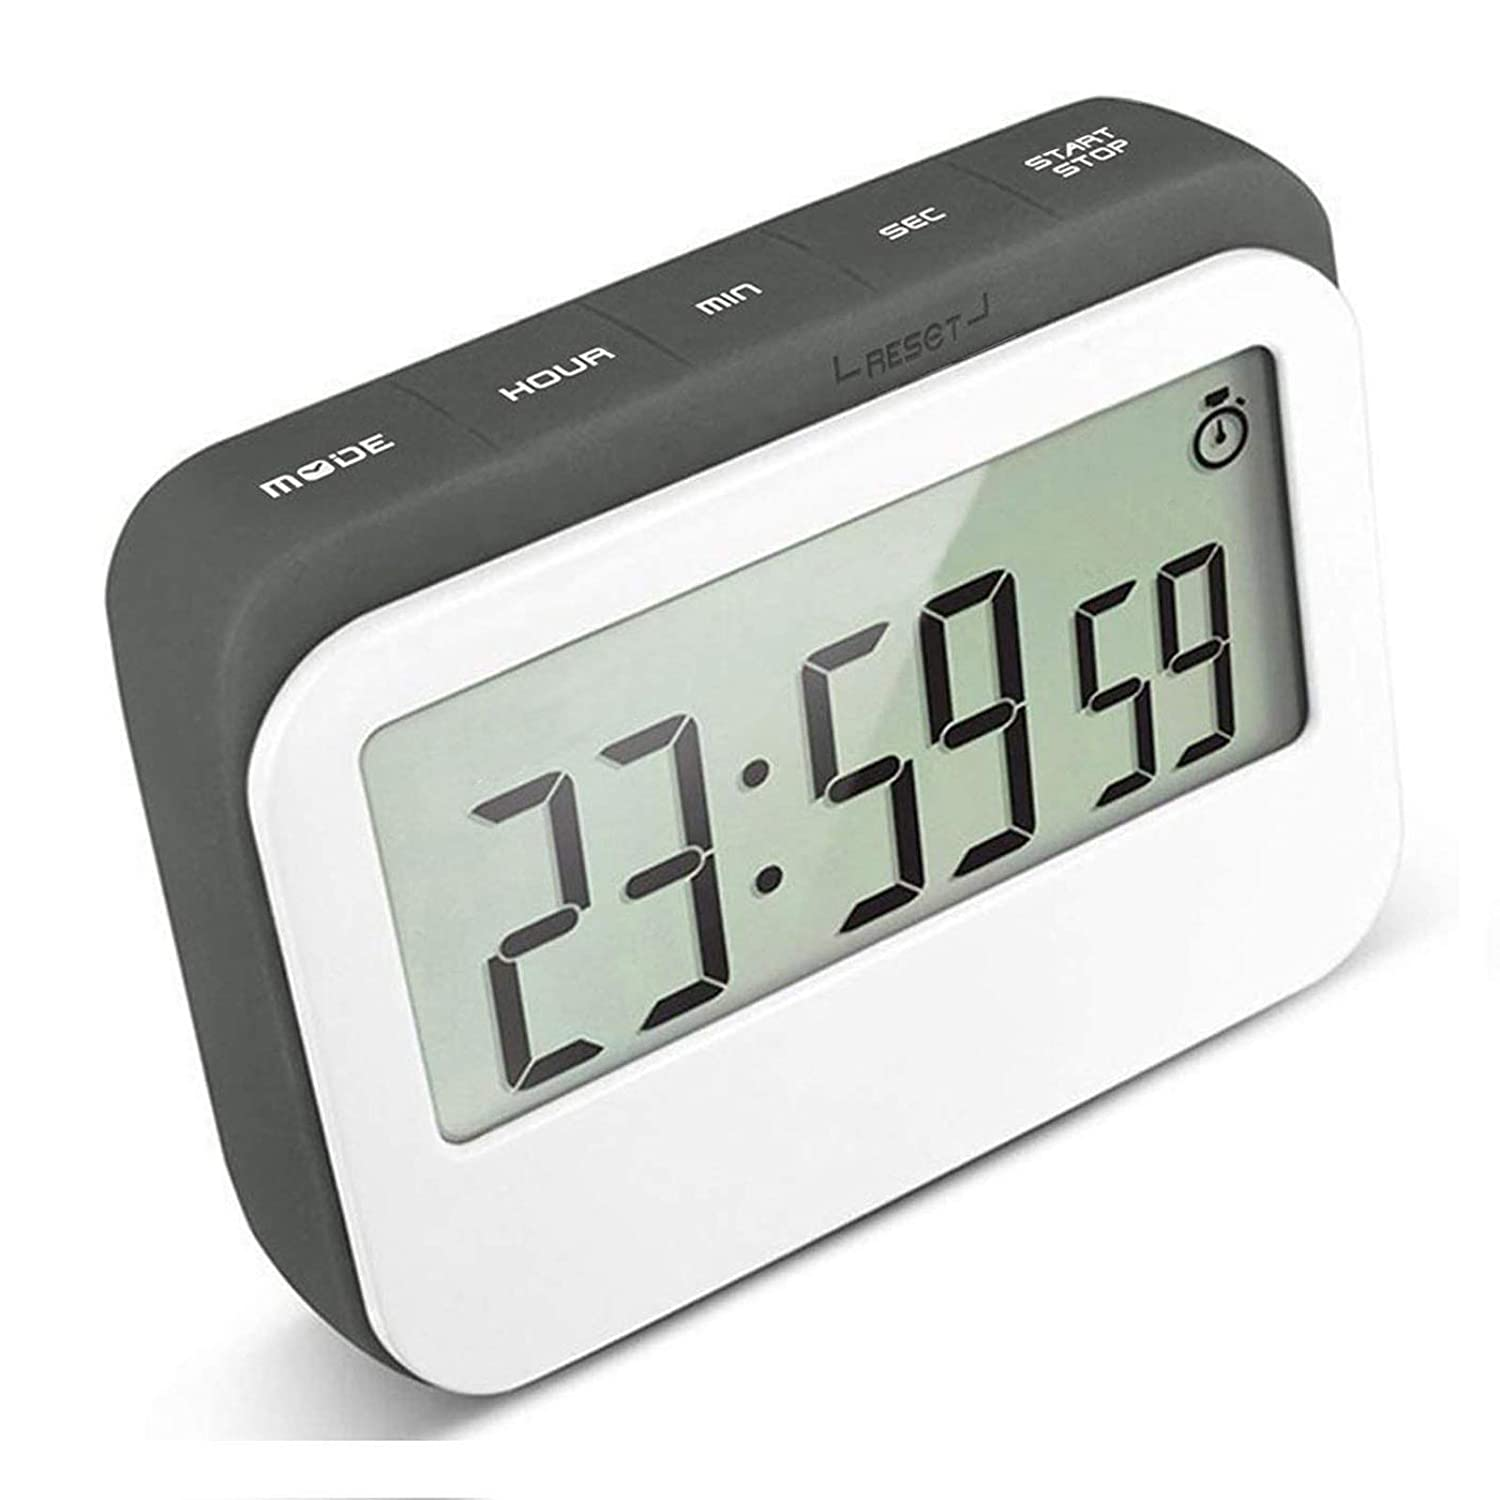 VPAL Digital Kitchen Timer 12 / 24 Hours Alarm Clock with Magnetic Back and Retractable Stand, Large LCD Display